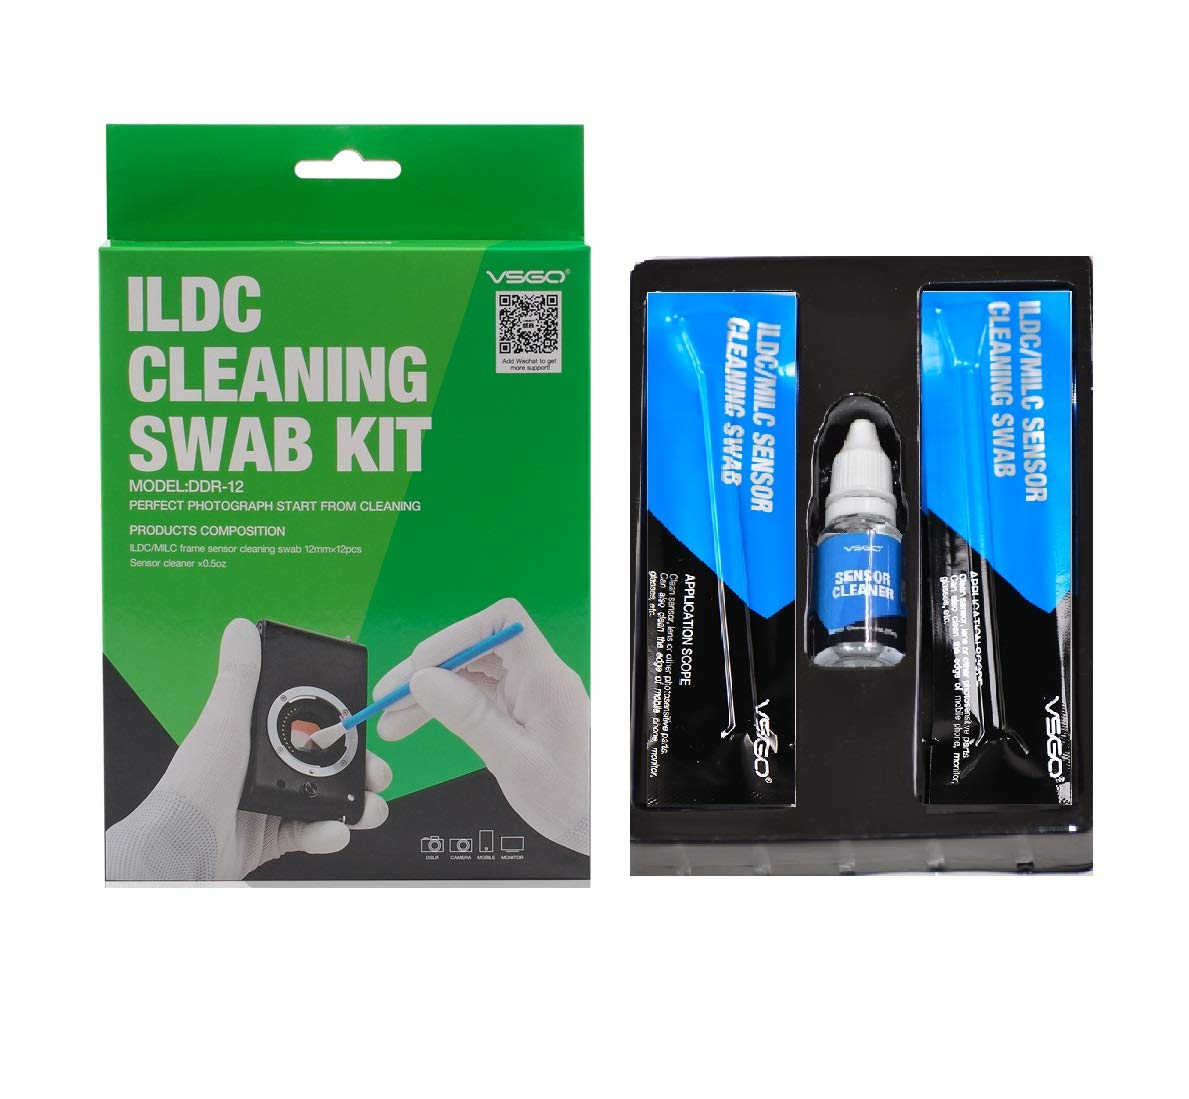 VSGO DDR-12 Sensor Cleaning Swab and Sensor Cleaner for Mirrorless (MILC) Cameras with Micro Four Thirds (MFT or M43) Sensor by VSGO